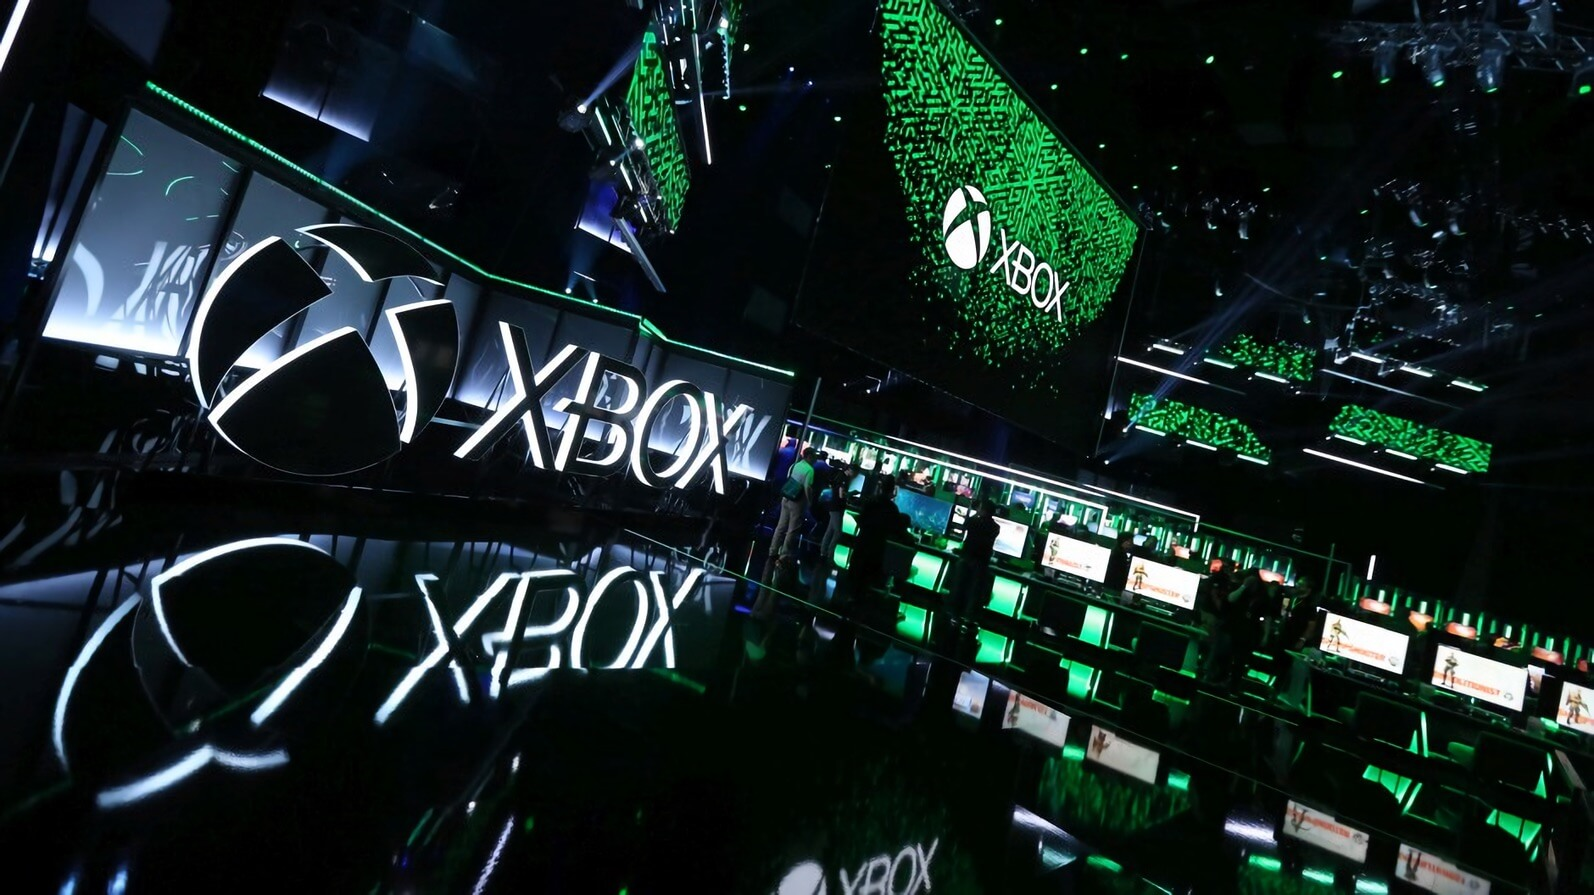 Xbox announces first details on the next-generation of Xbox - Project Scarlett